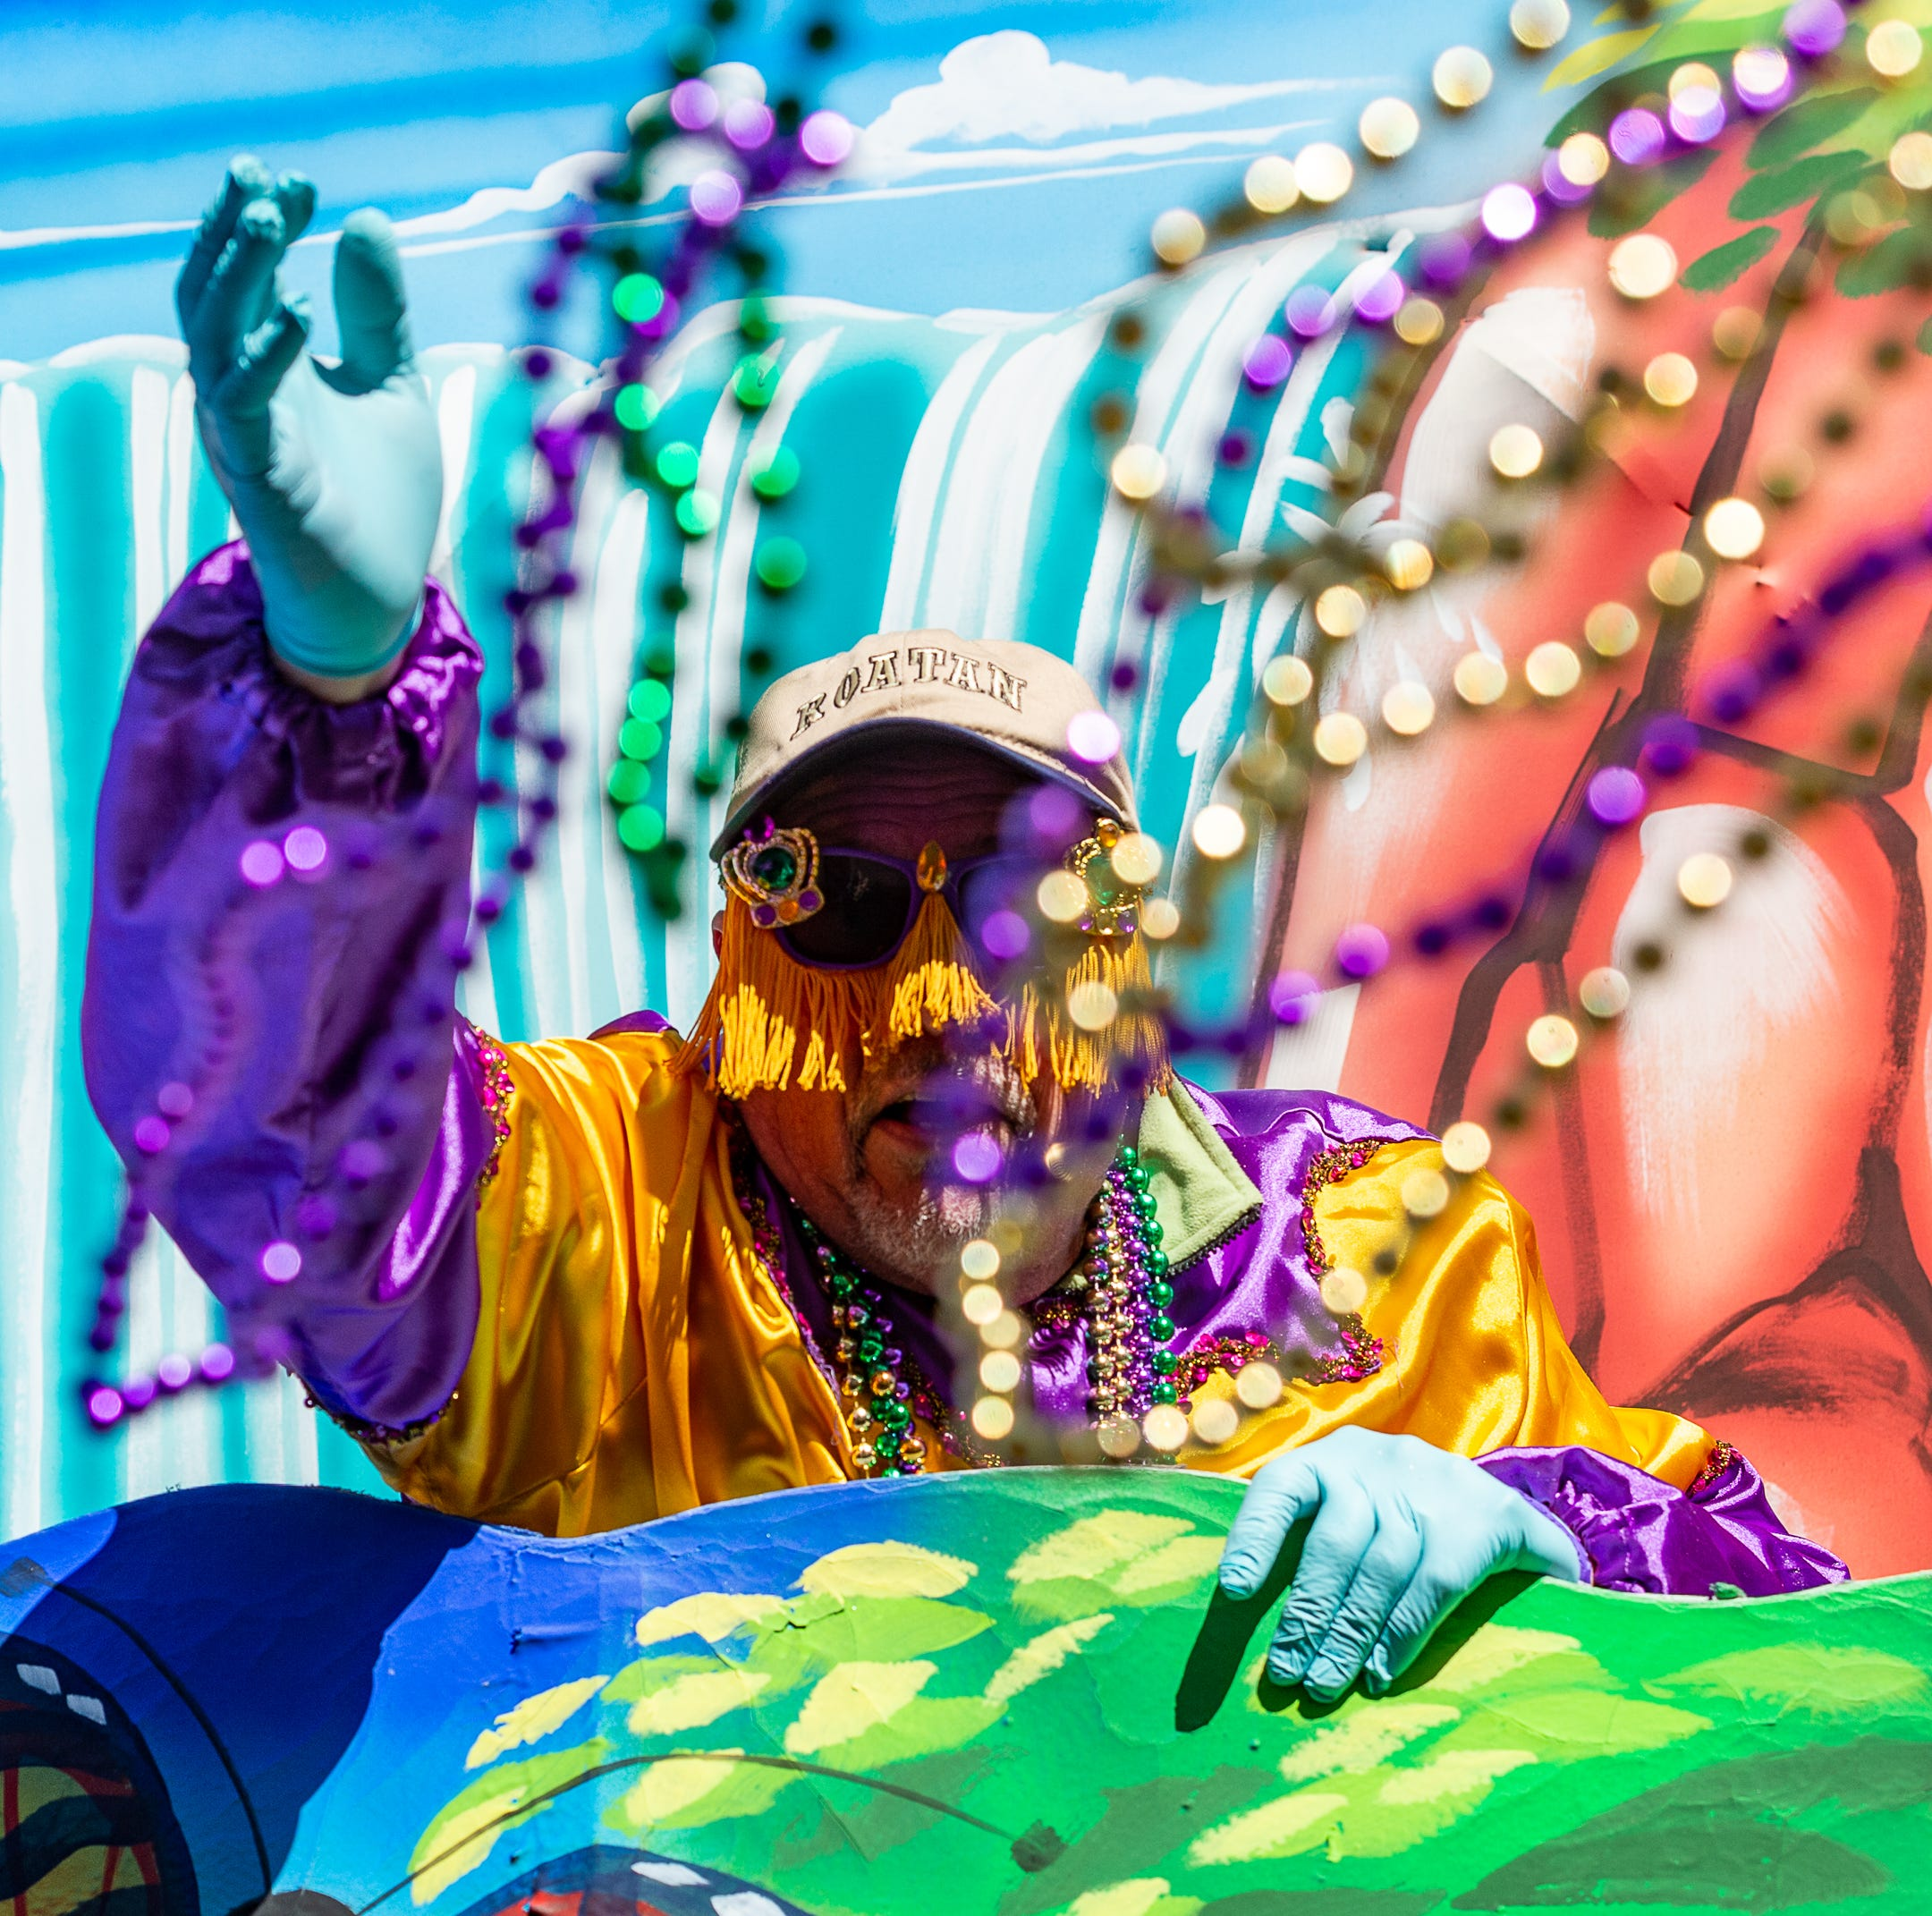 Lafayette's 2019 Mardi Gras celebration in photos